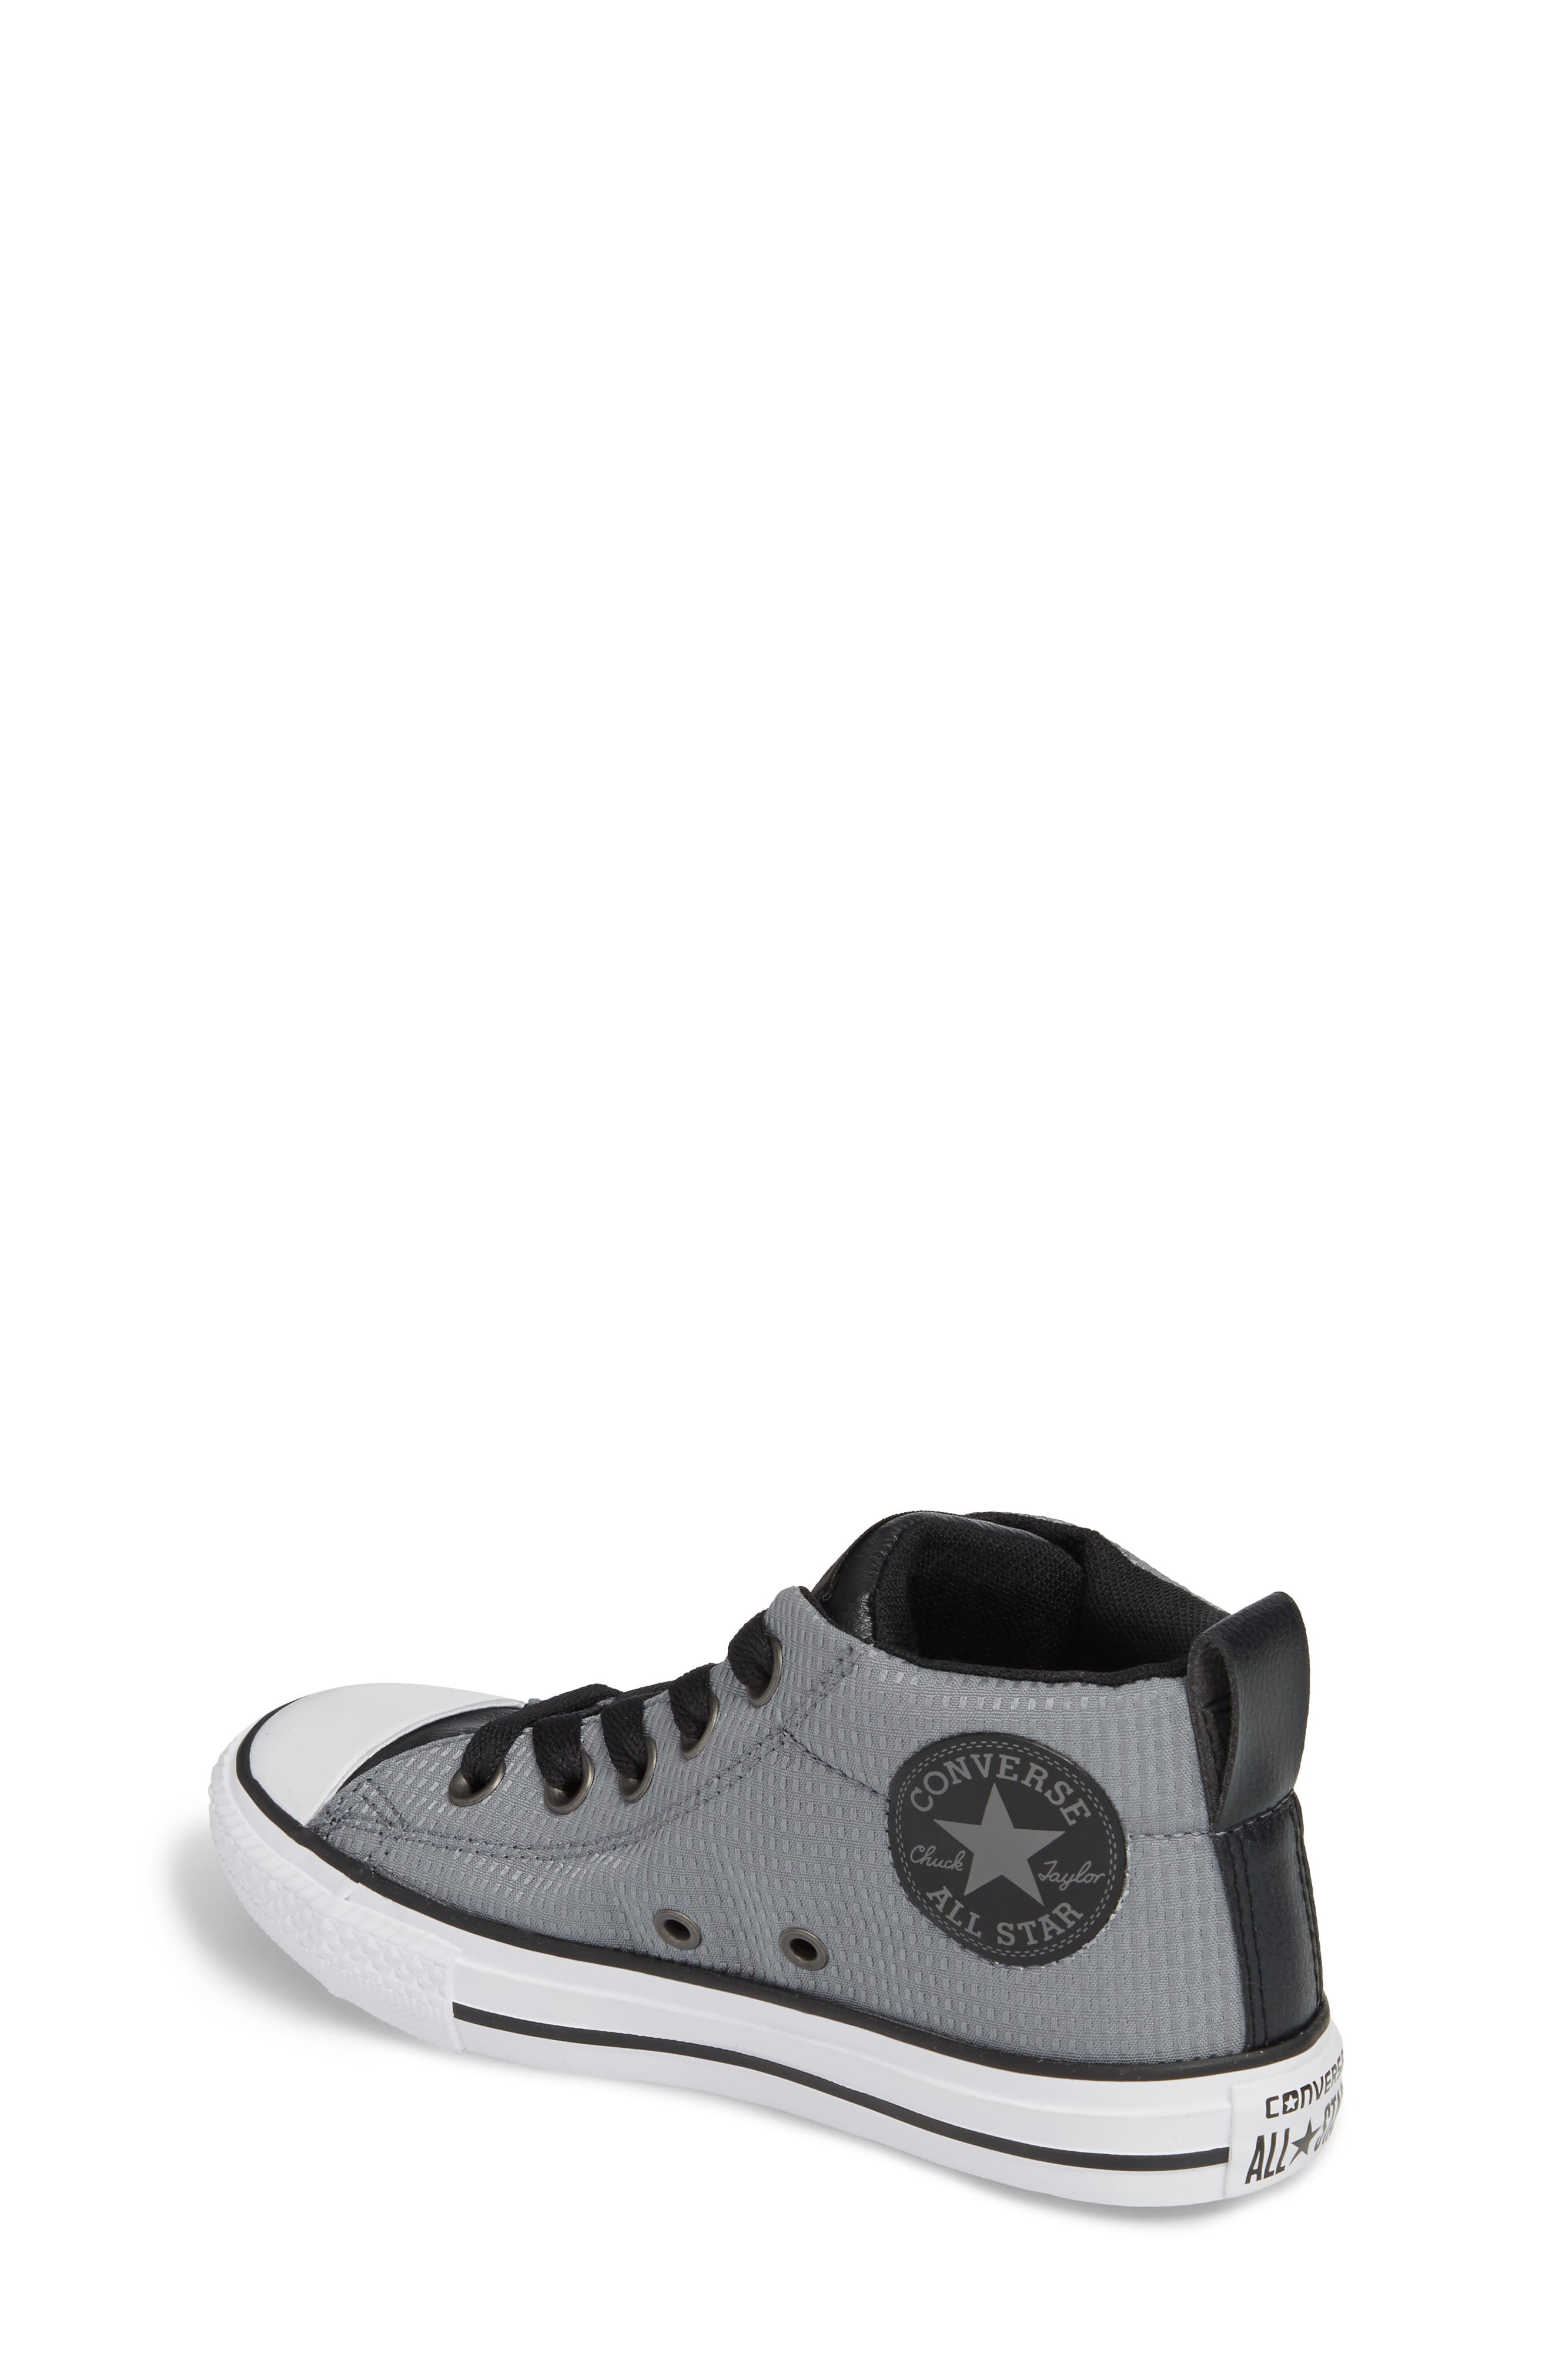 Chuck Taylor<sup>®</sup> All Star<sup>®</sup> Street Mid Backpack Sneaker,                             Alternate thumbnail 2, color,                             039